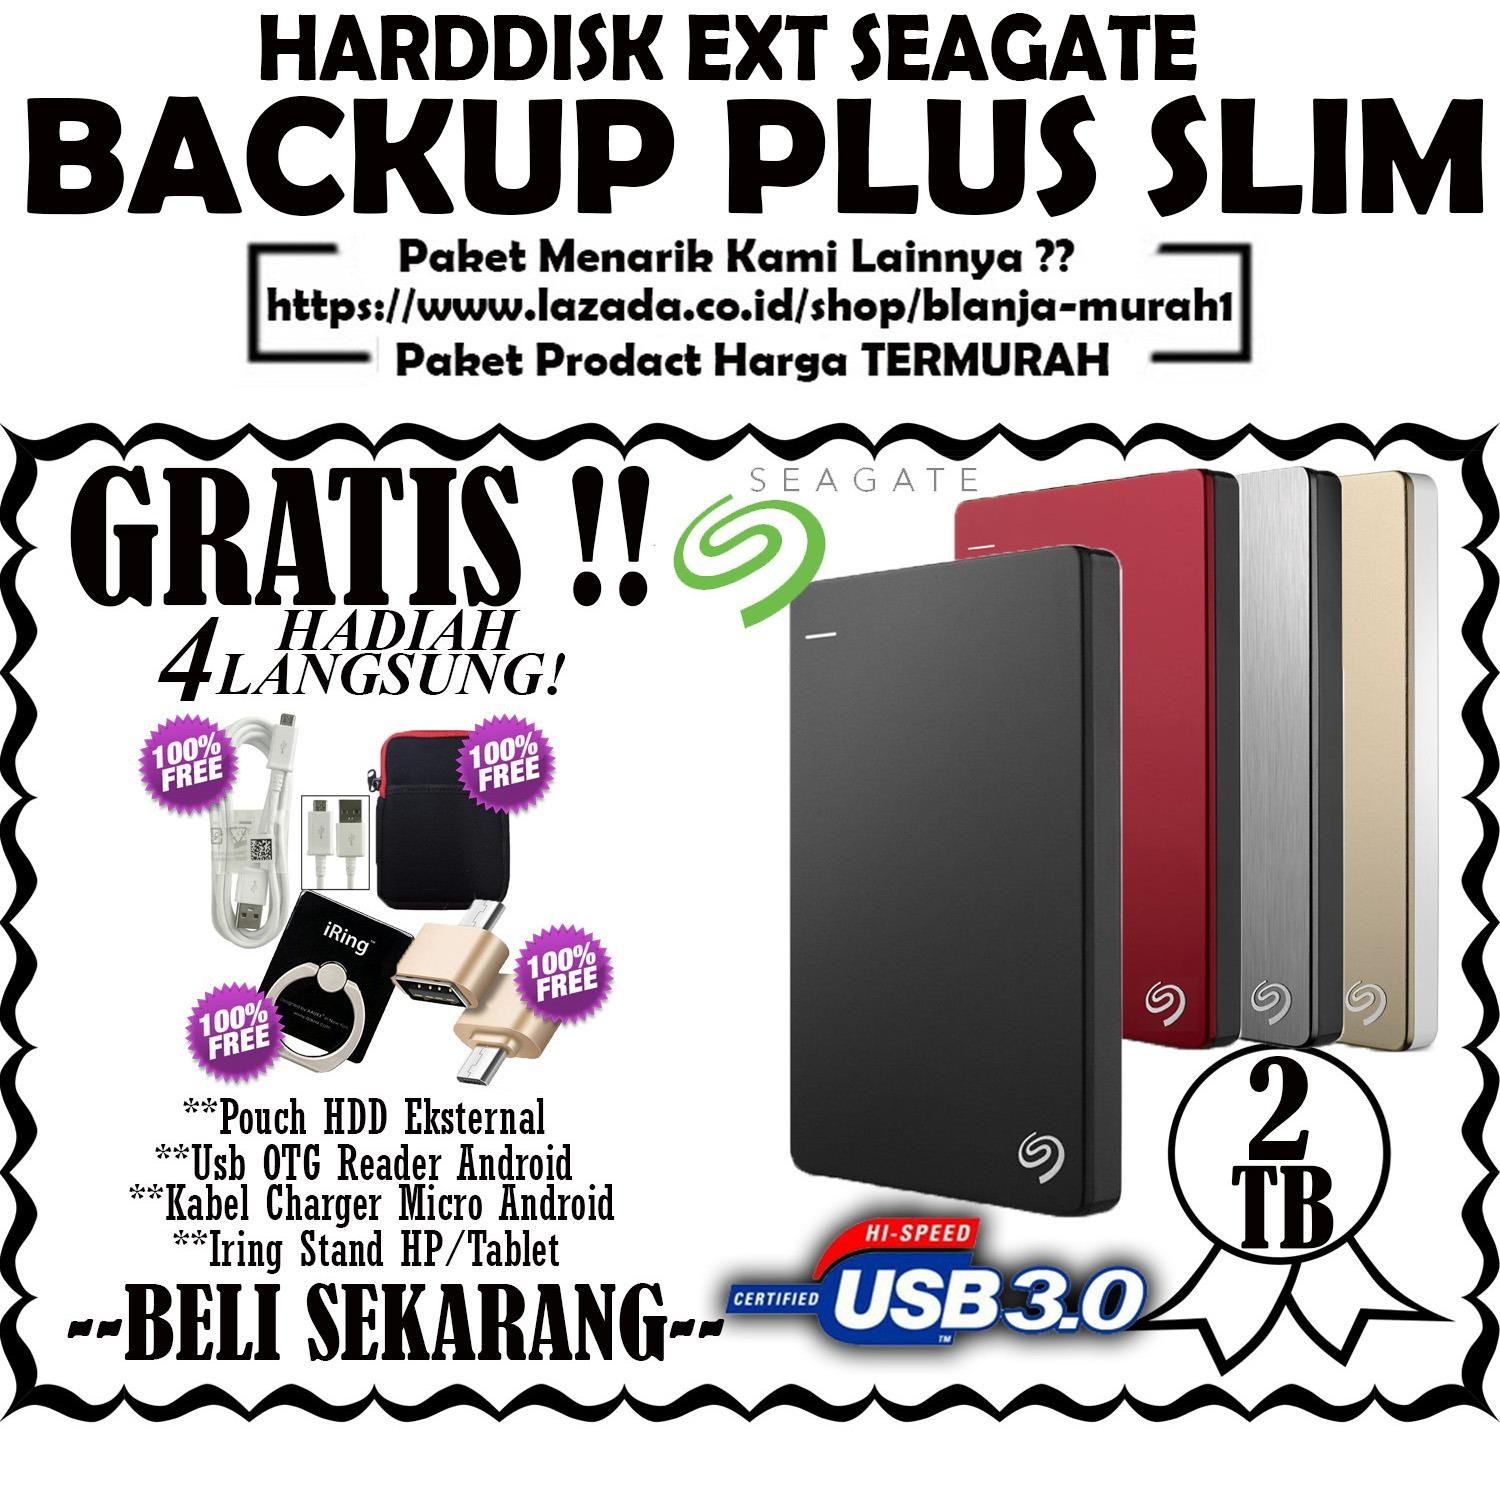 Beli Seagate Backup Plus Slim 2Tb Hdd Hd Hardisk External 2 5 Gratis Pouch Hdd Kabel Charger Micro Android Usb Otg Reader Android Iring Stand Hp Tablet Seagate